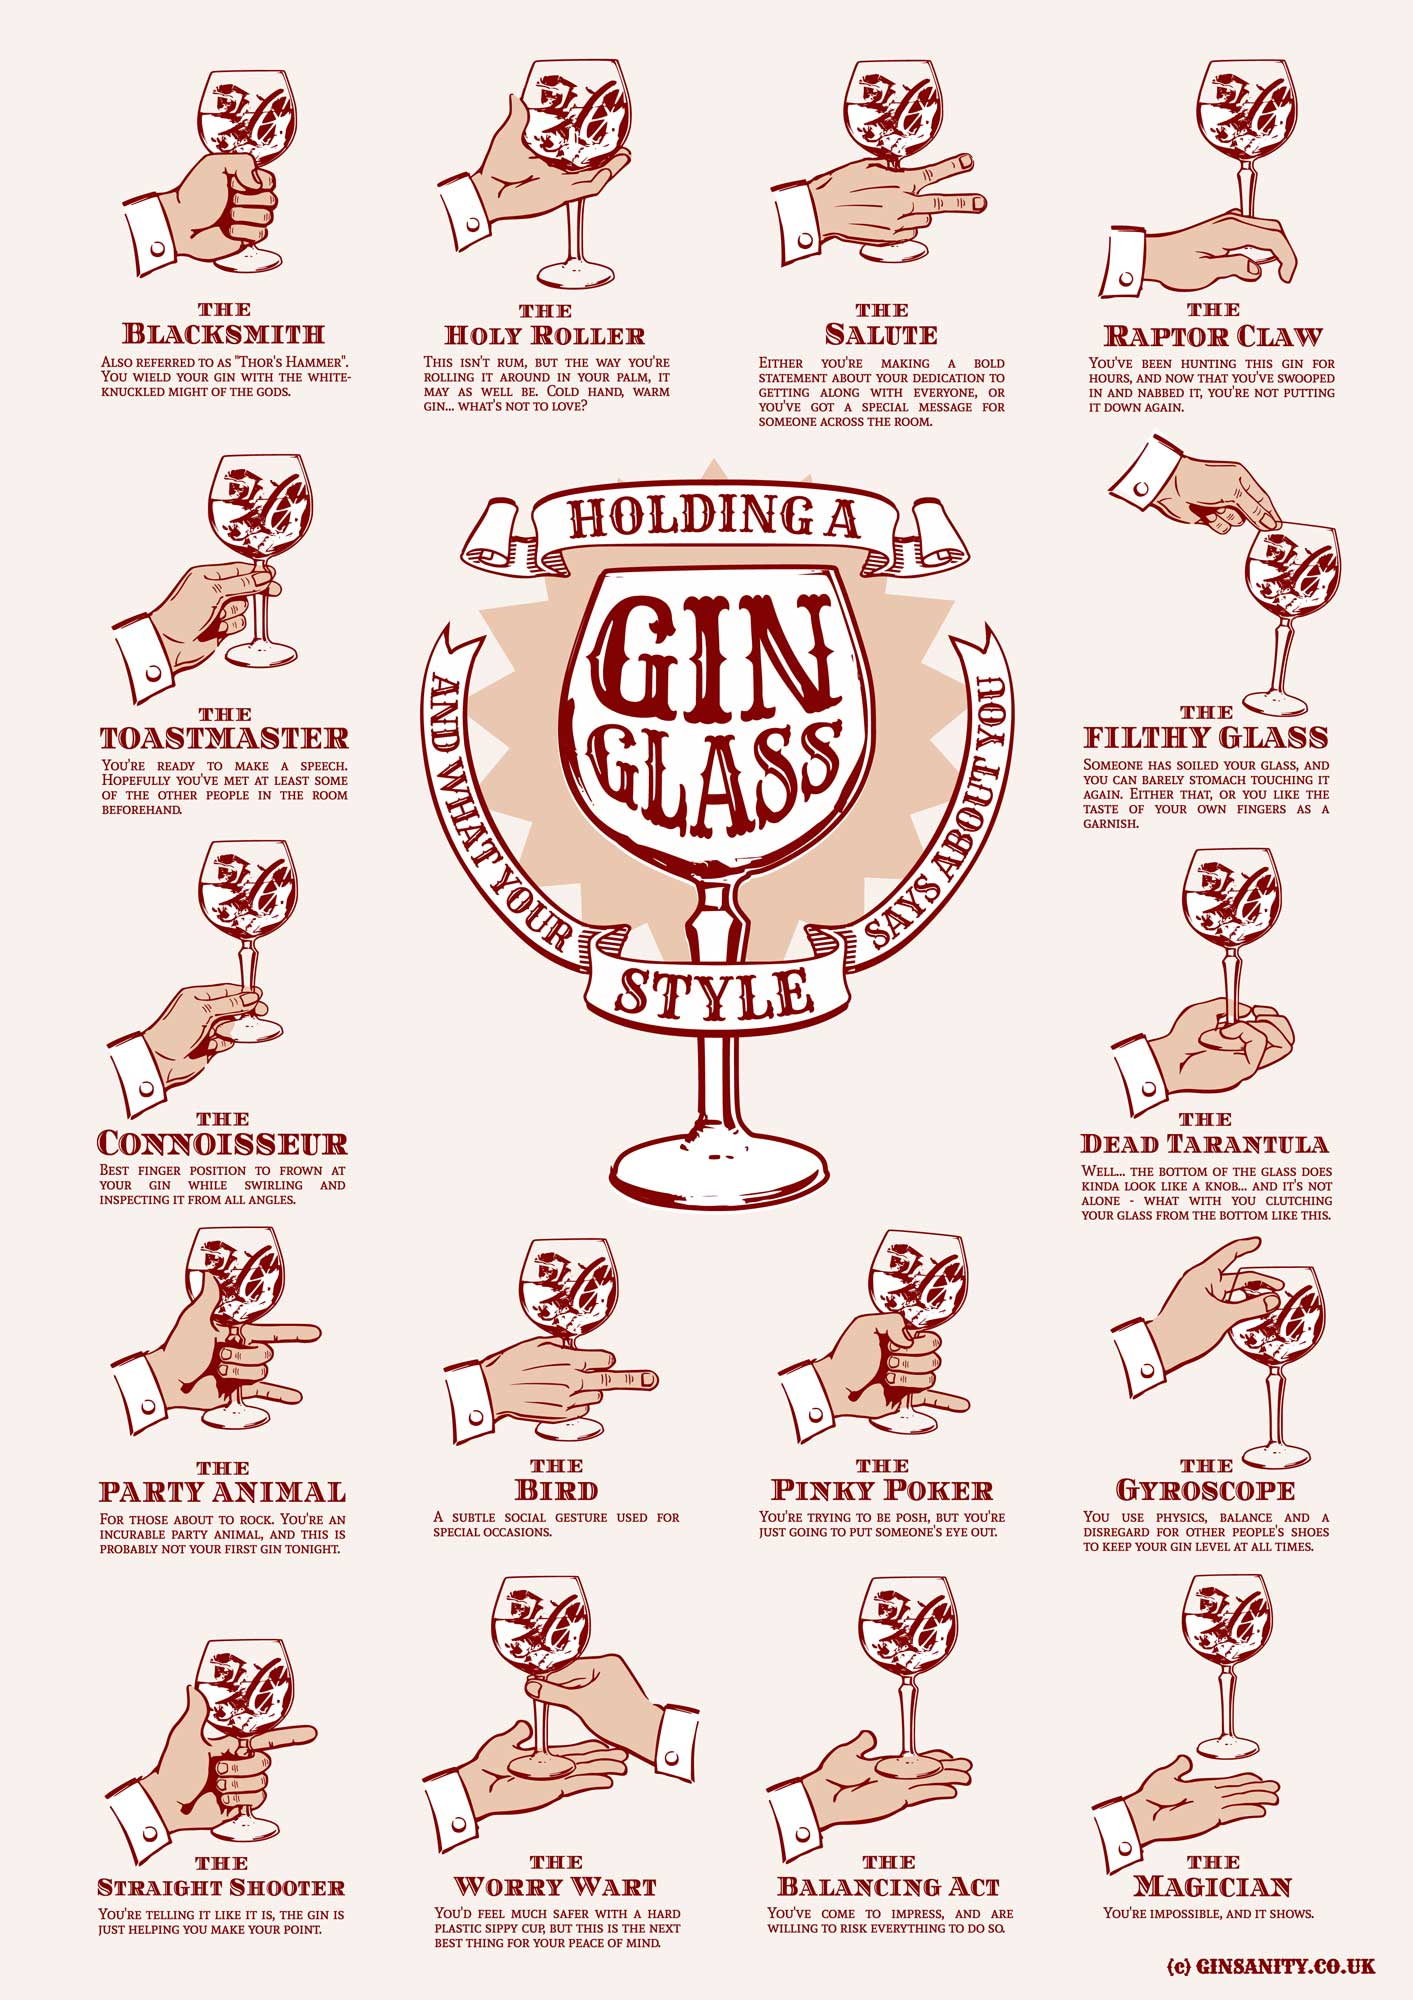 How To Hold A Gin Glass A3 Poster Ginsanity Ginsanity